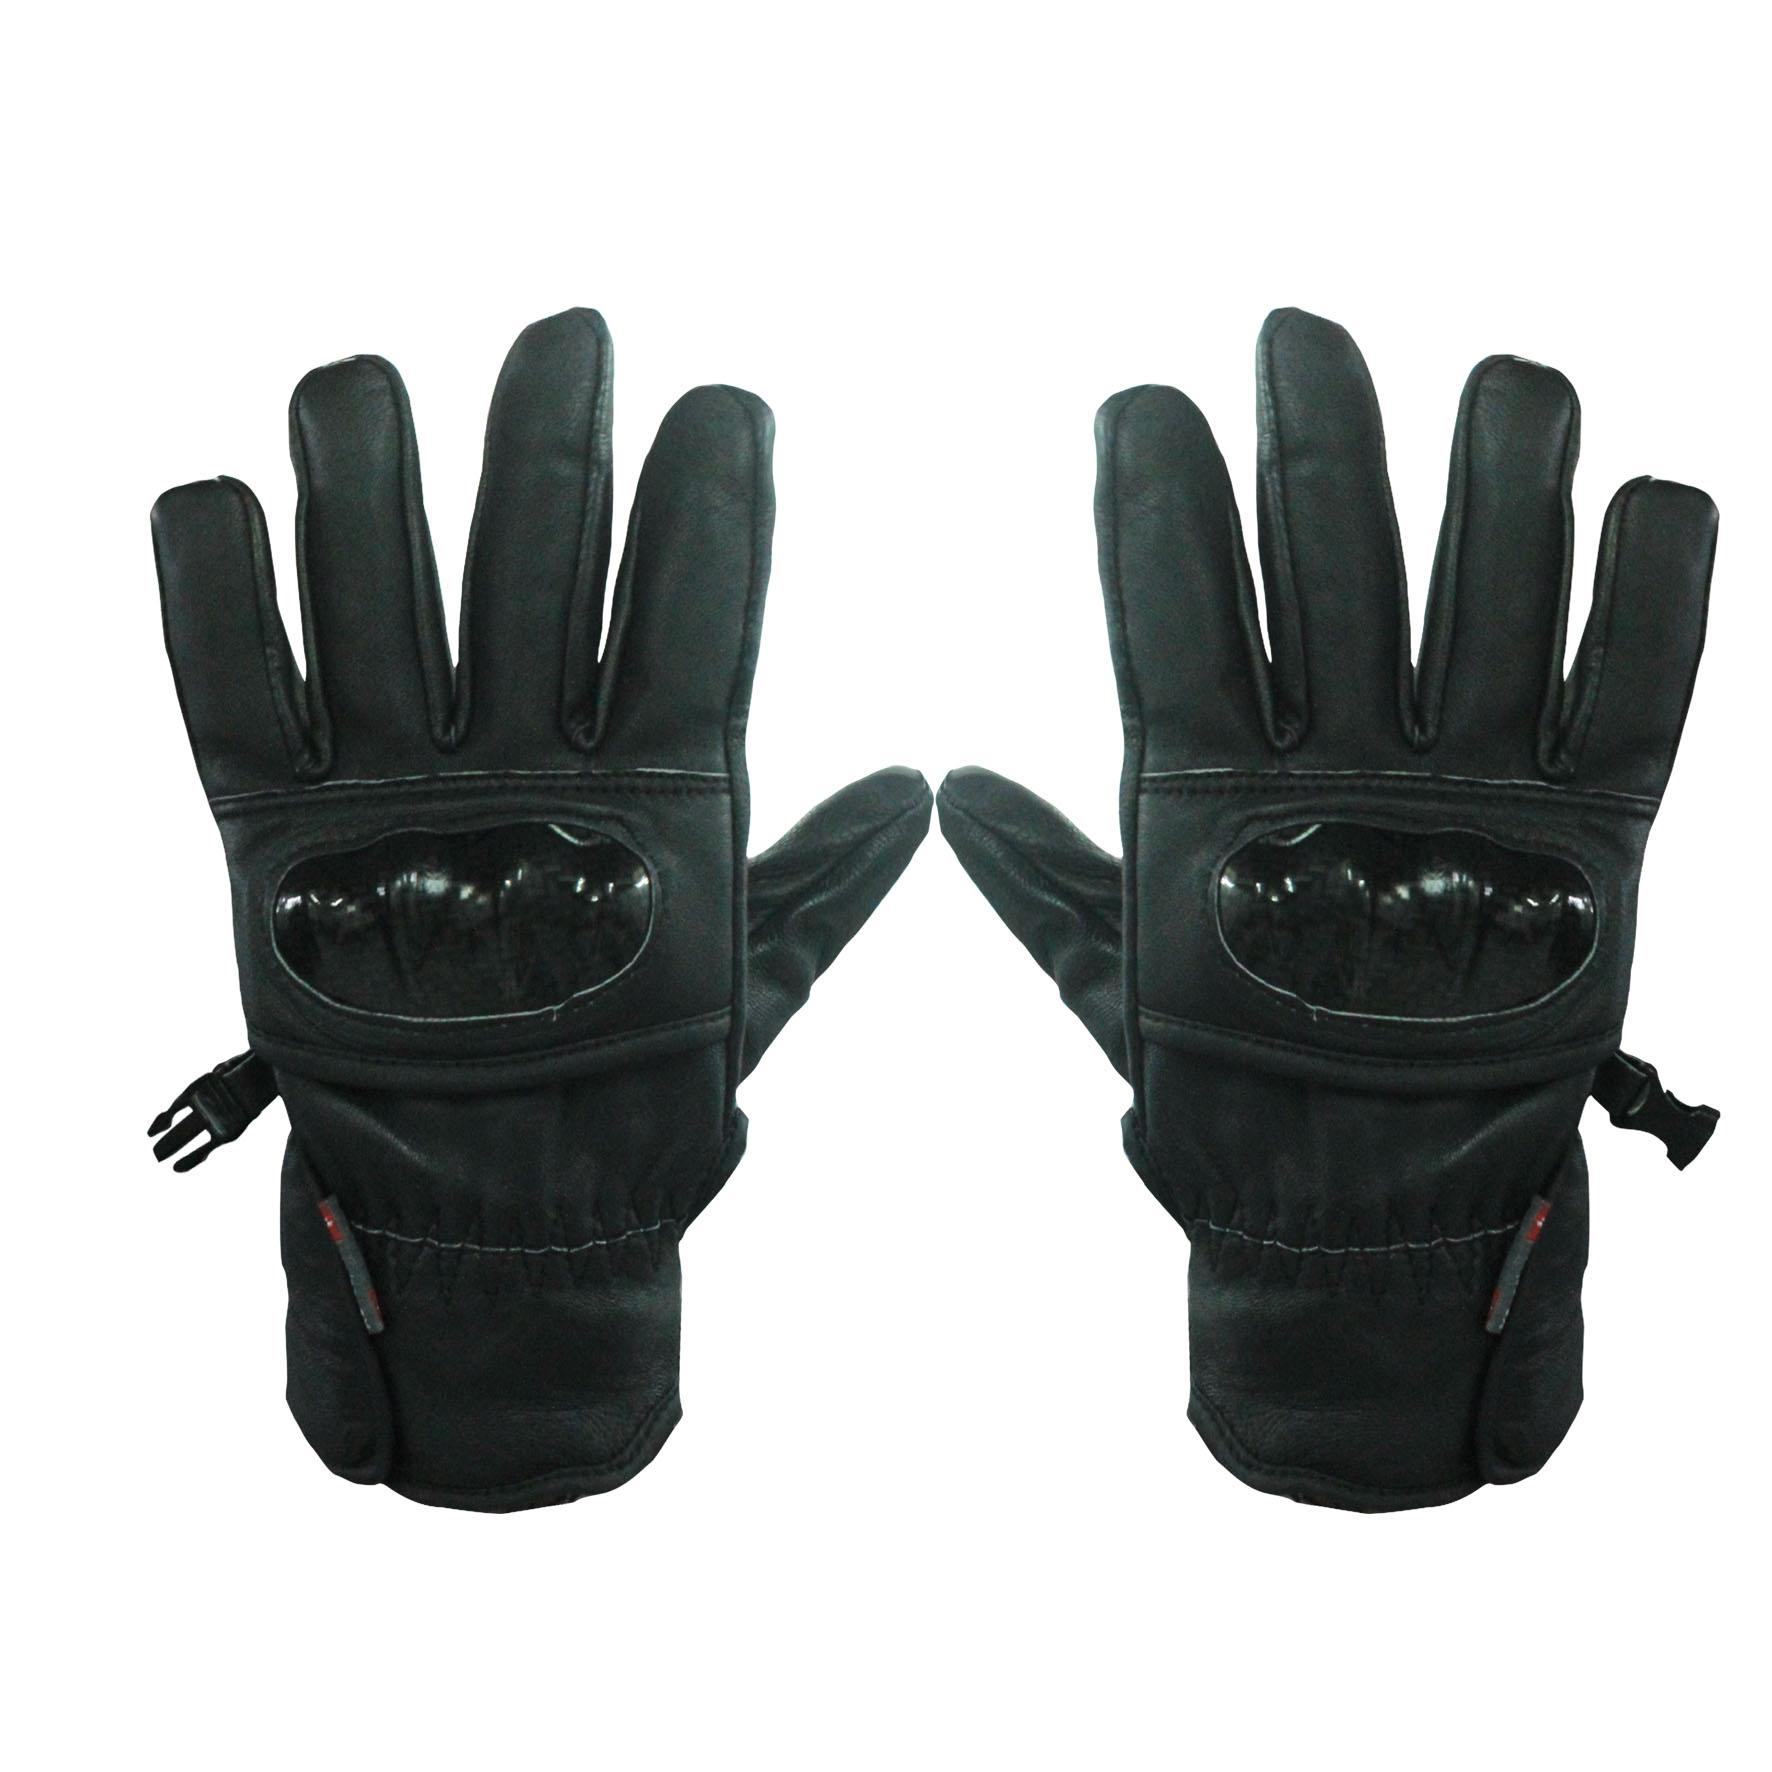 Forester Stf 06120 Full Glove Leather 01 Sarung Tangan Panjang Kulit By Forester Official.